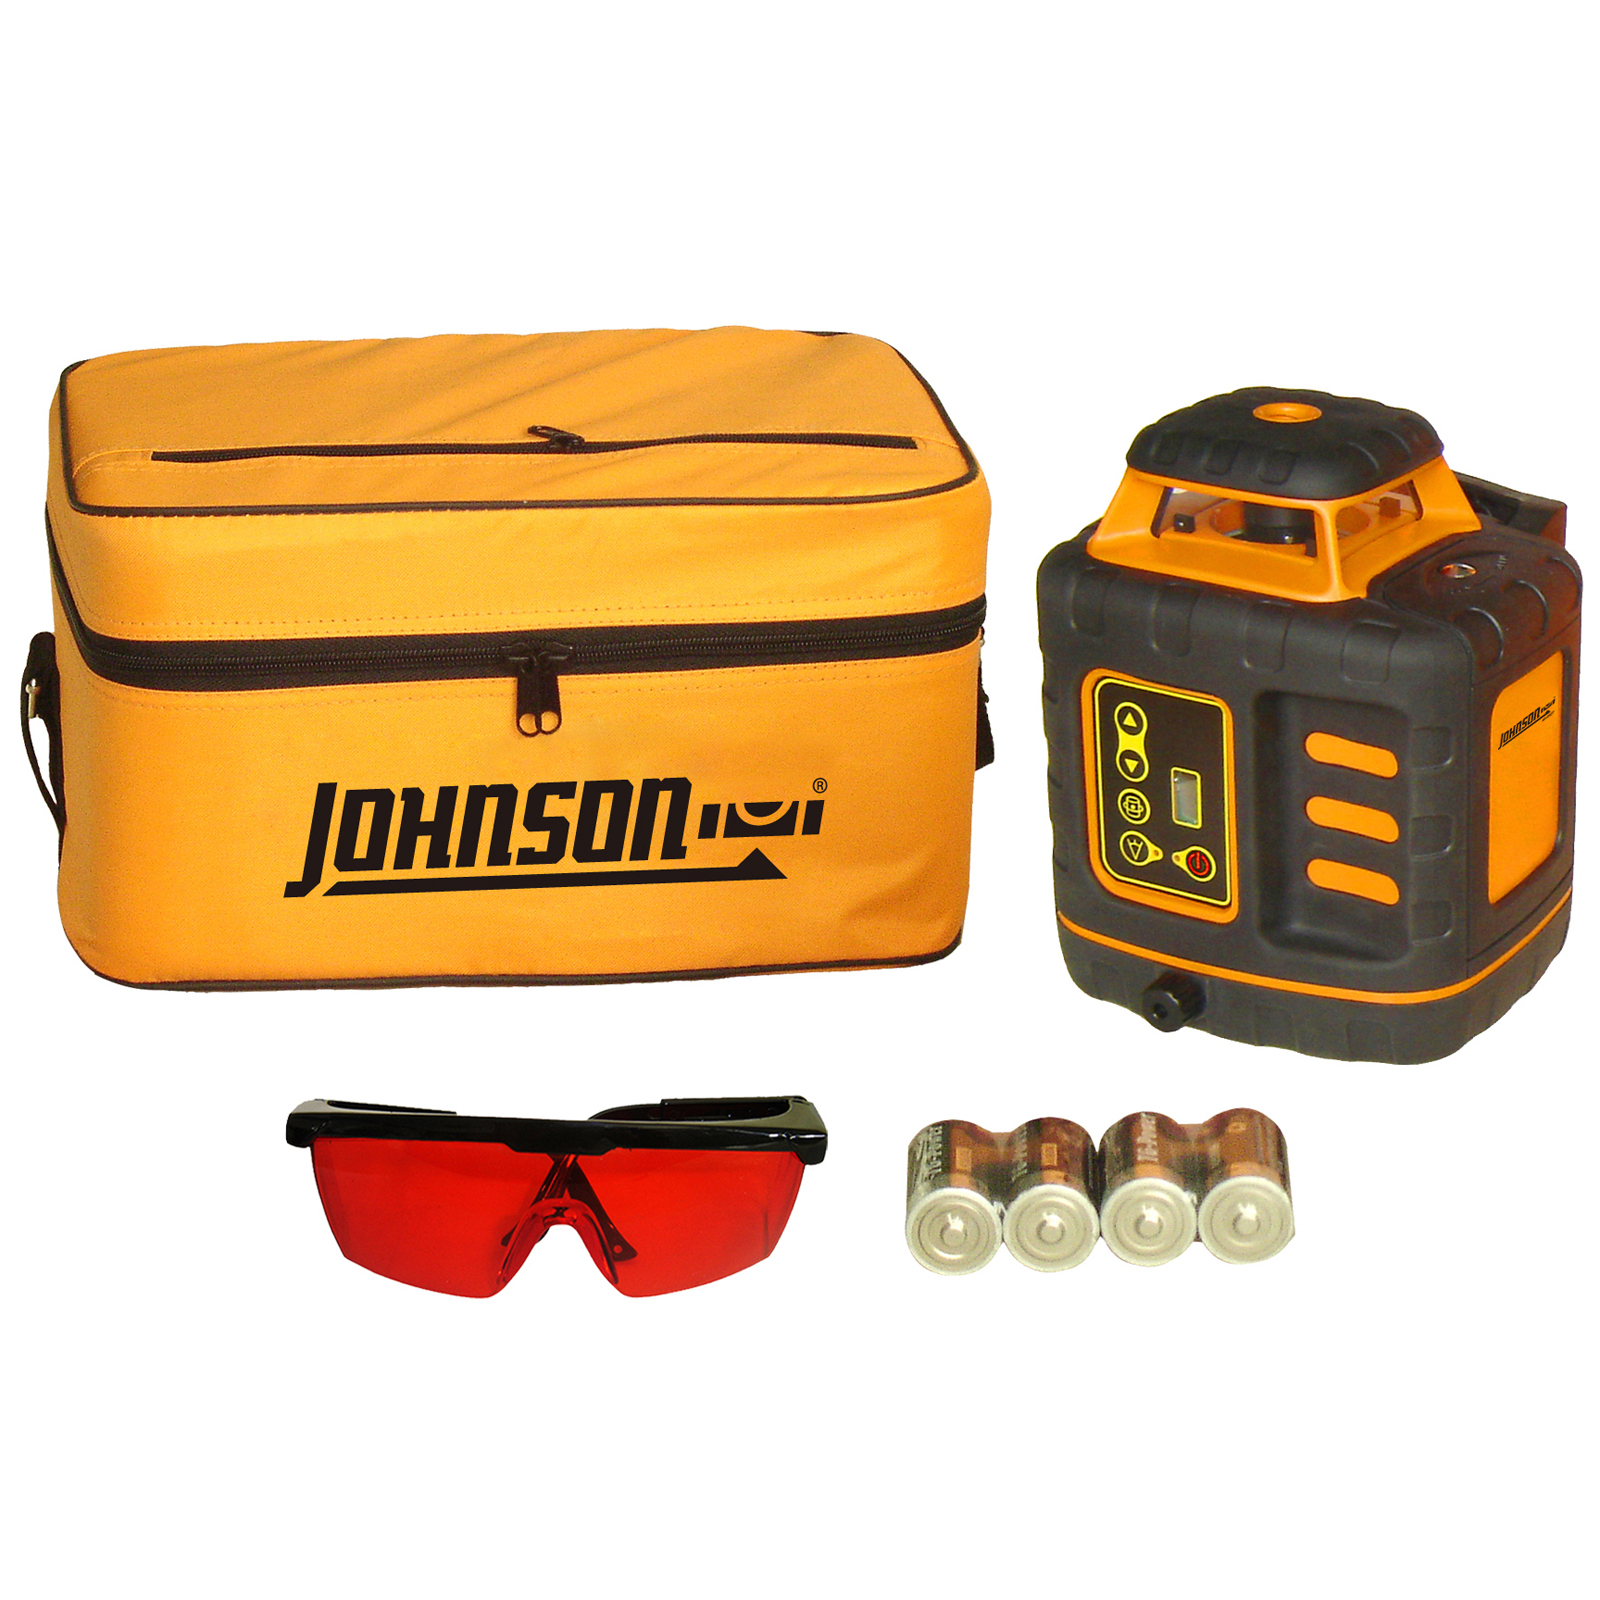 Johnson Level Self-Leveling Rotary Laser